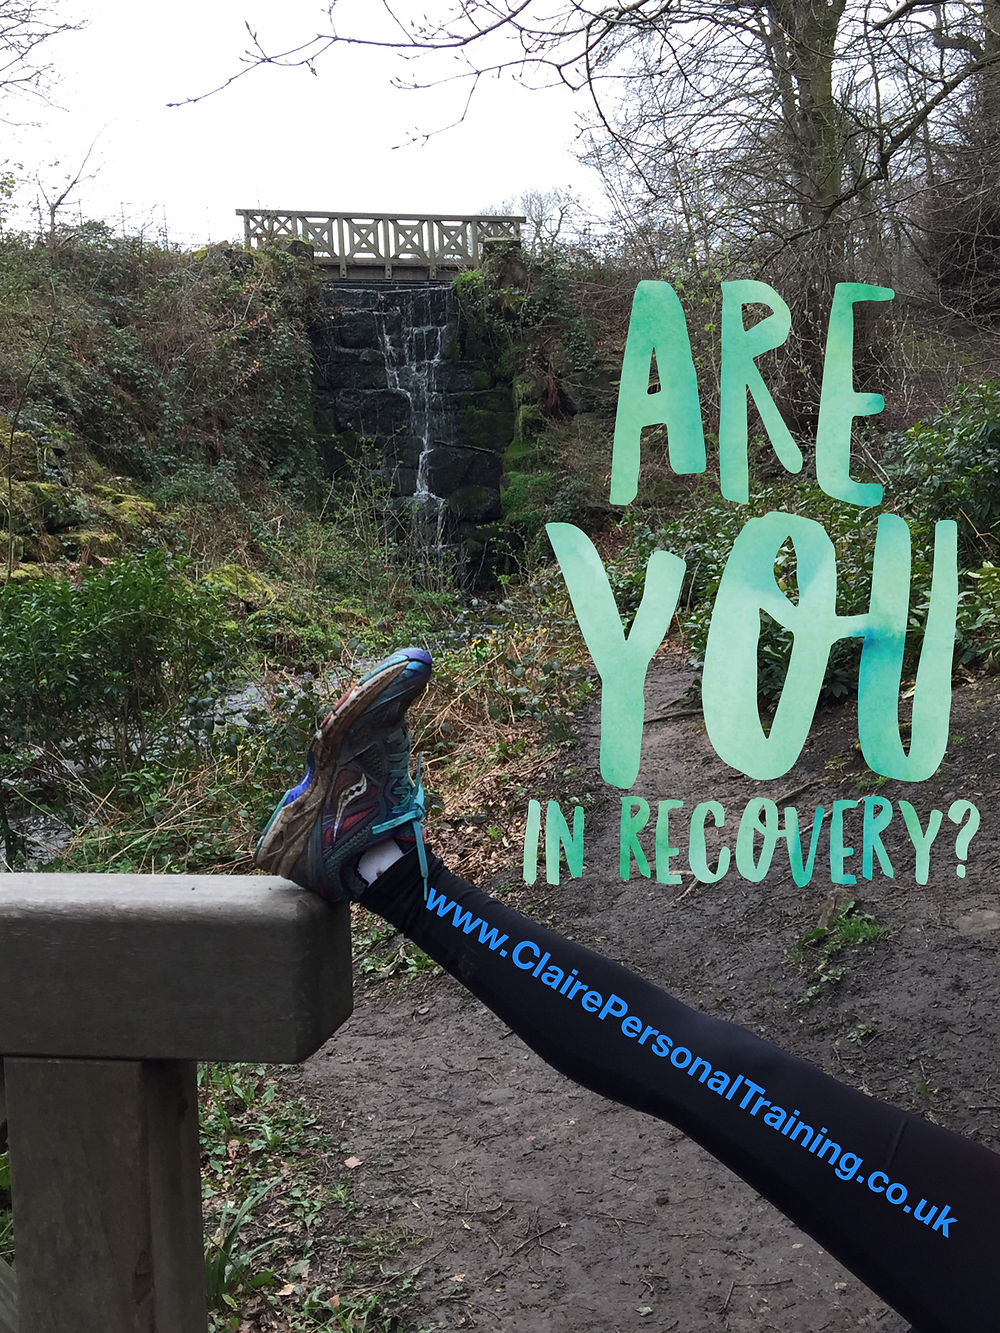 Are you in recovery?